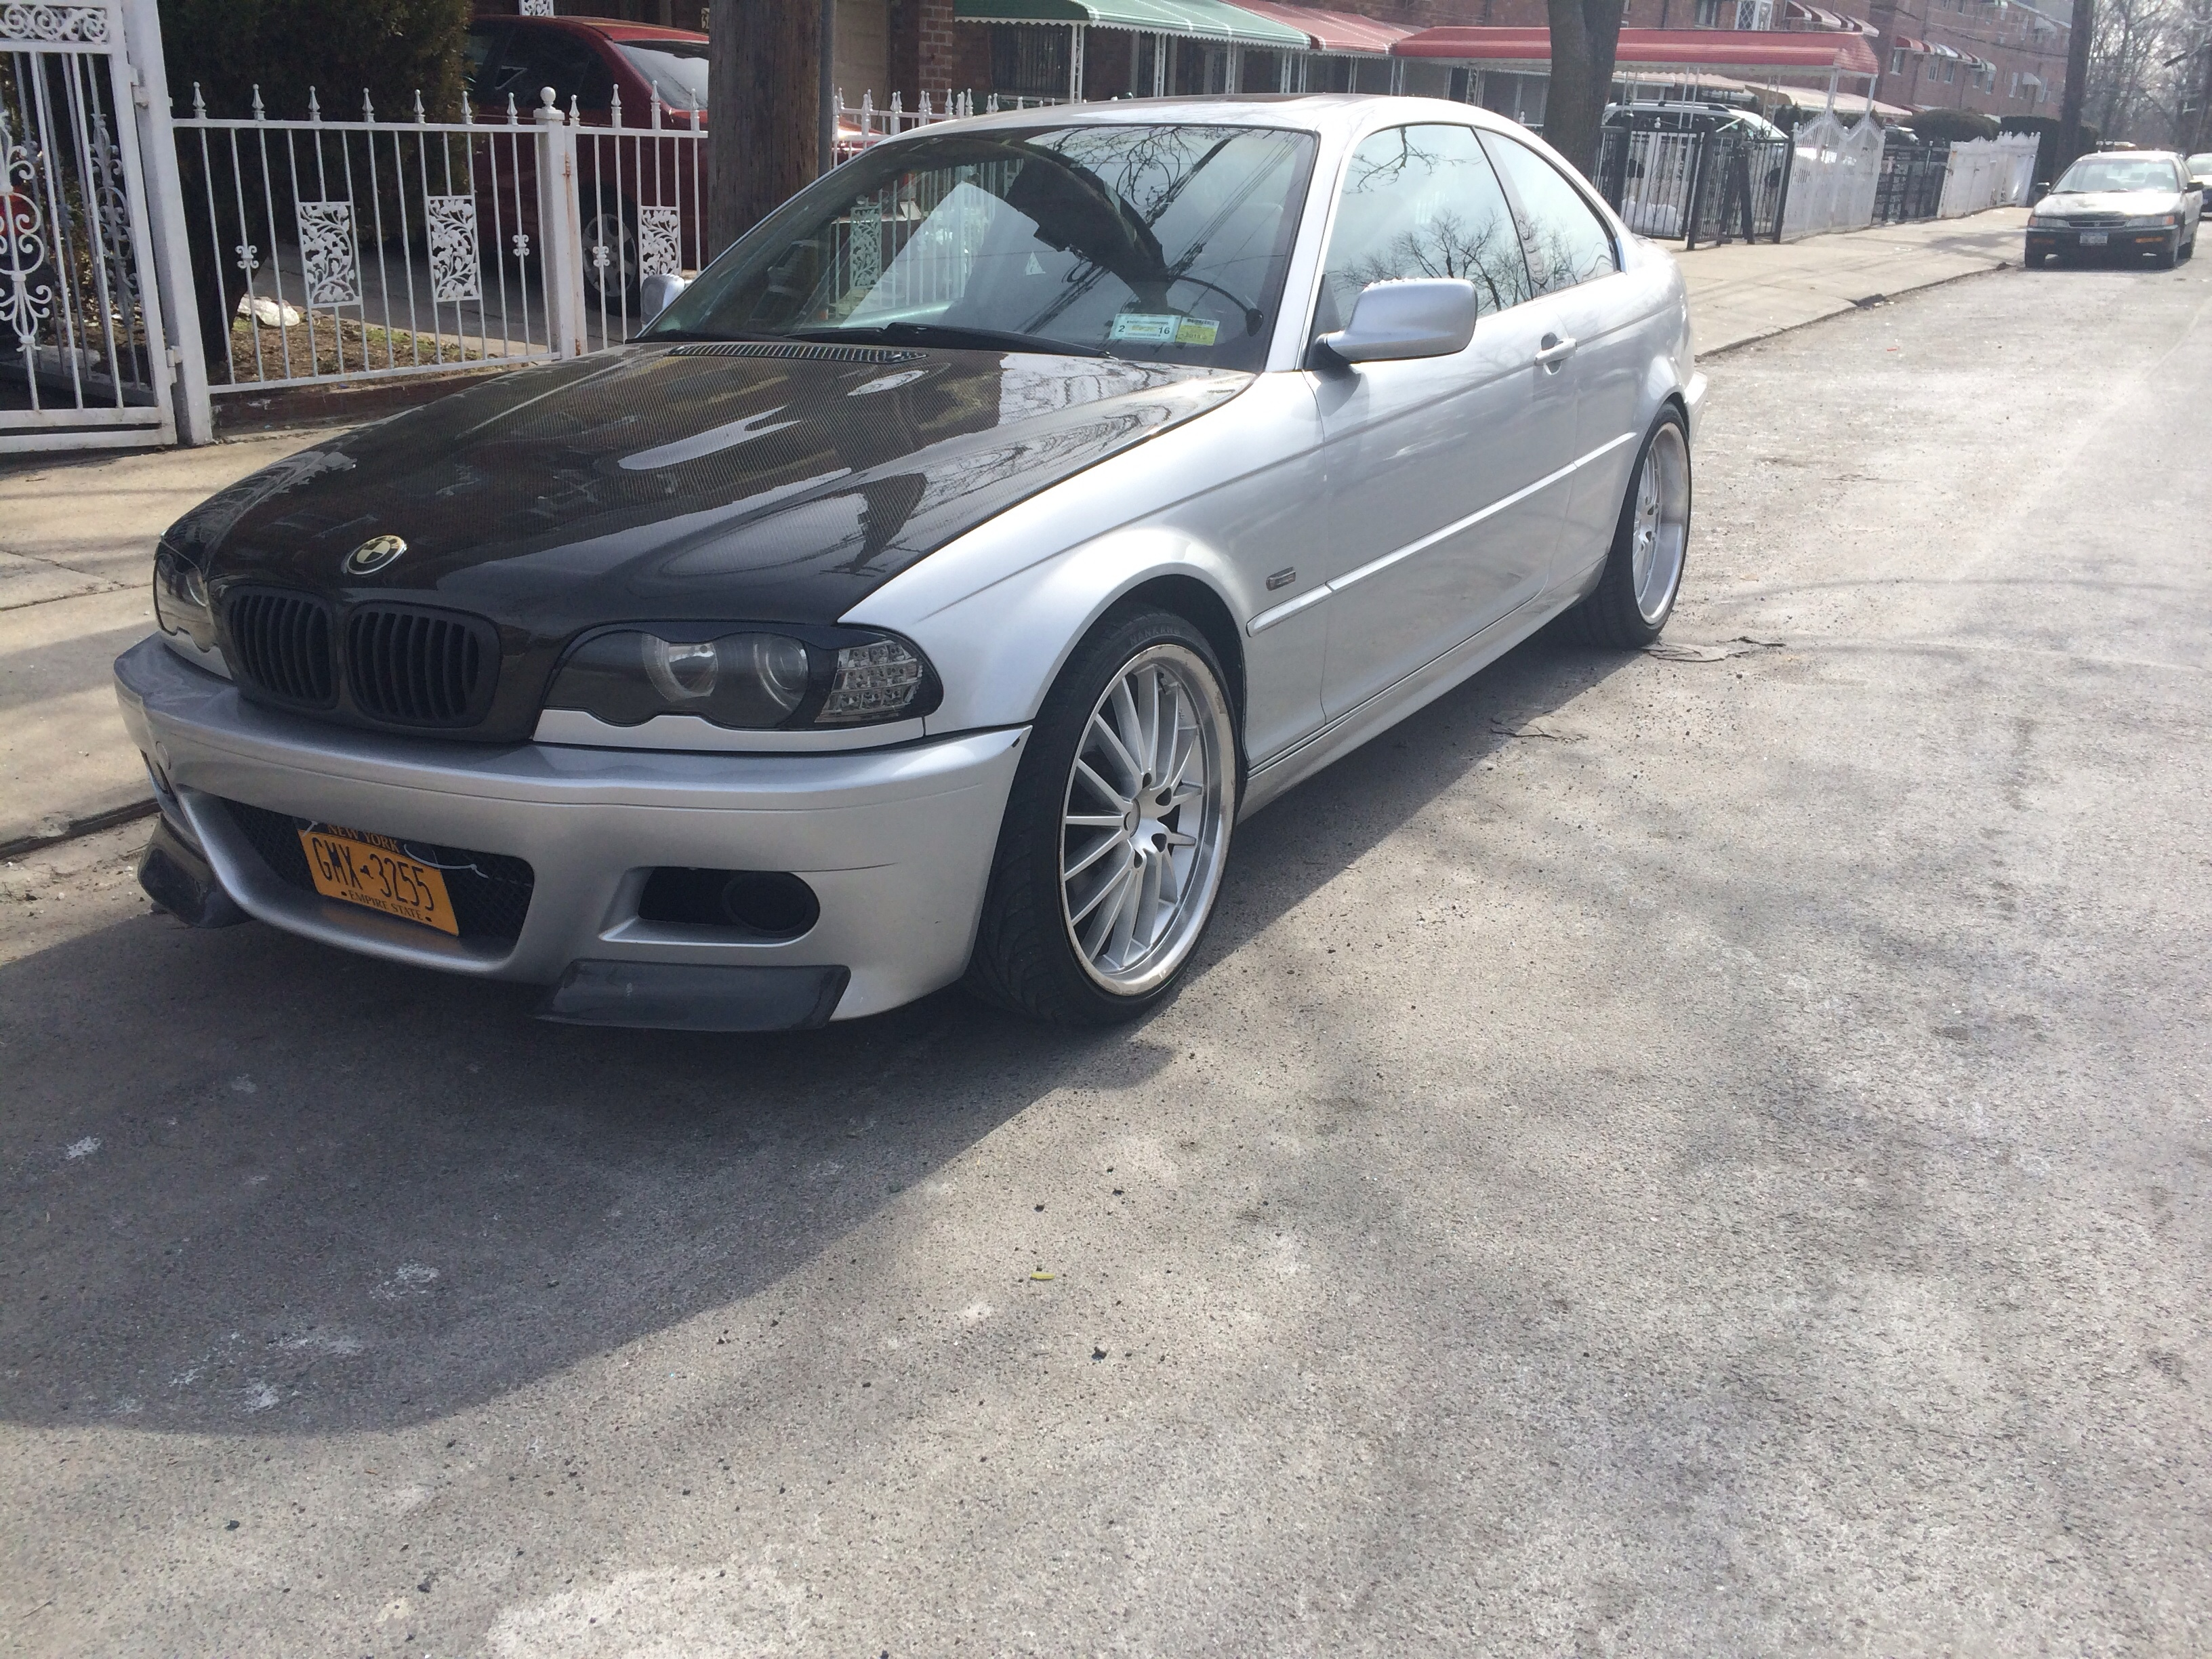 handyman1851's 2000 BMW 3-Series